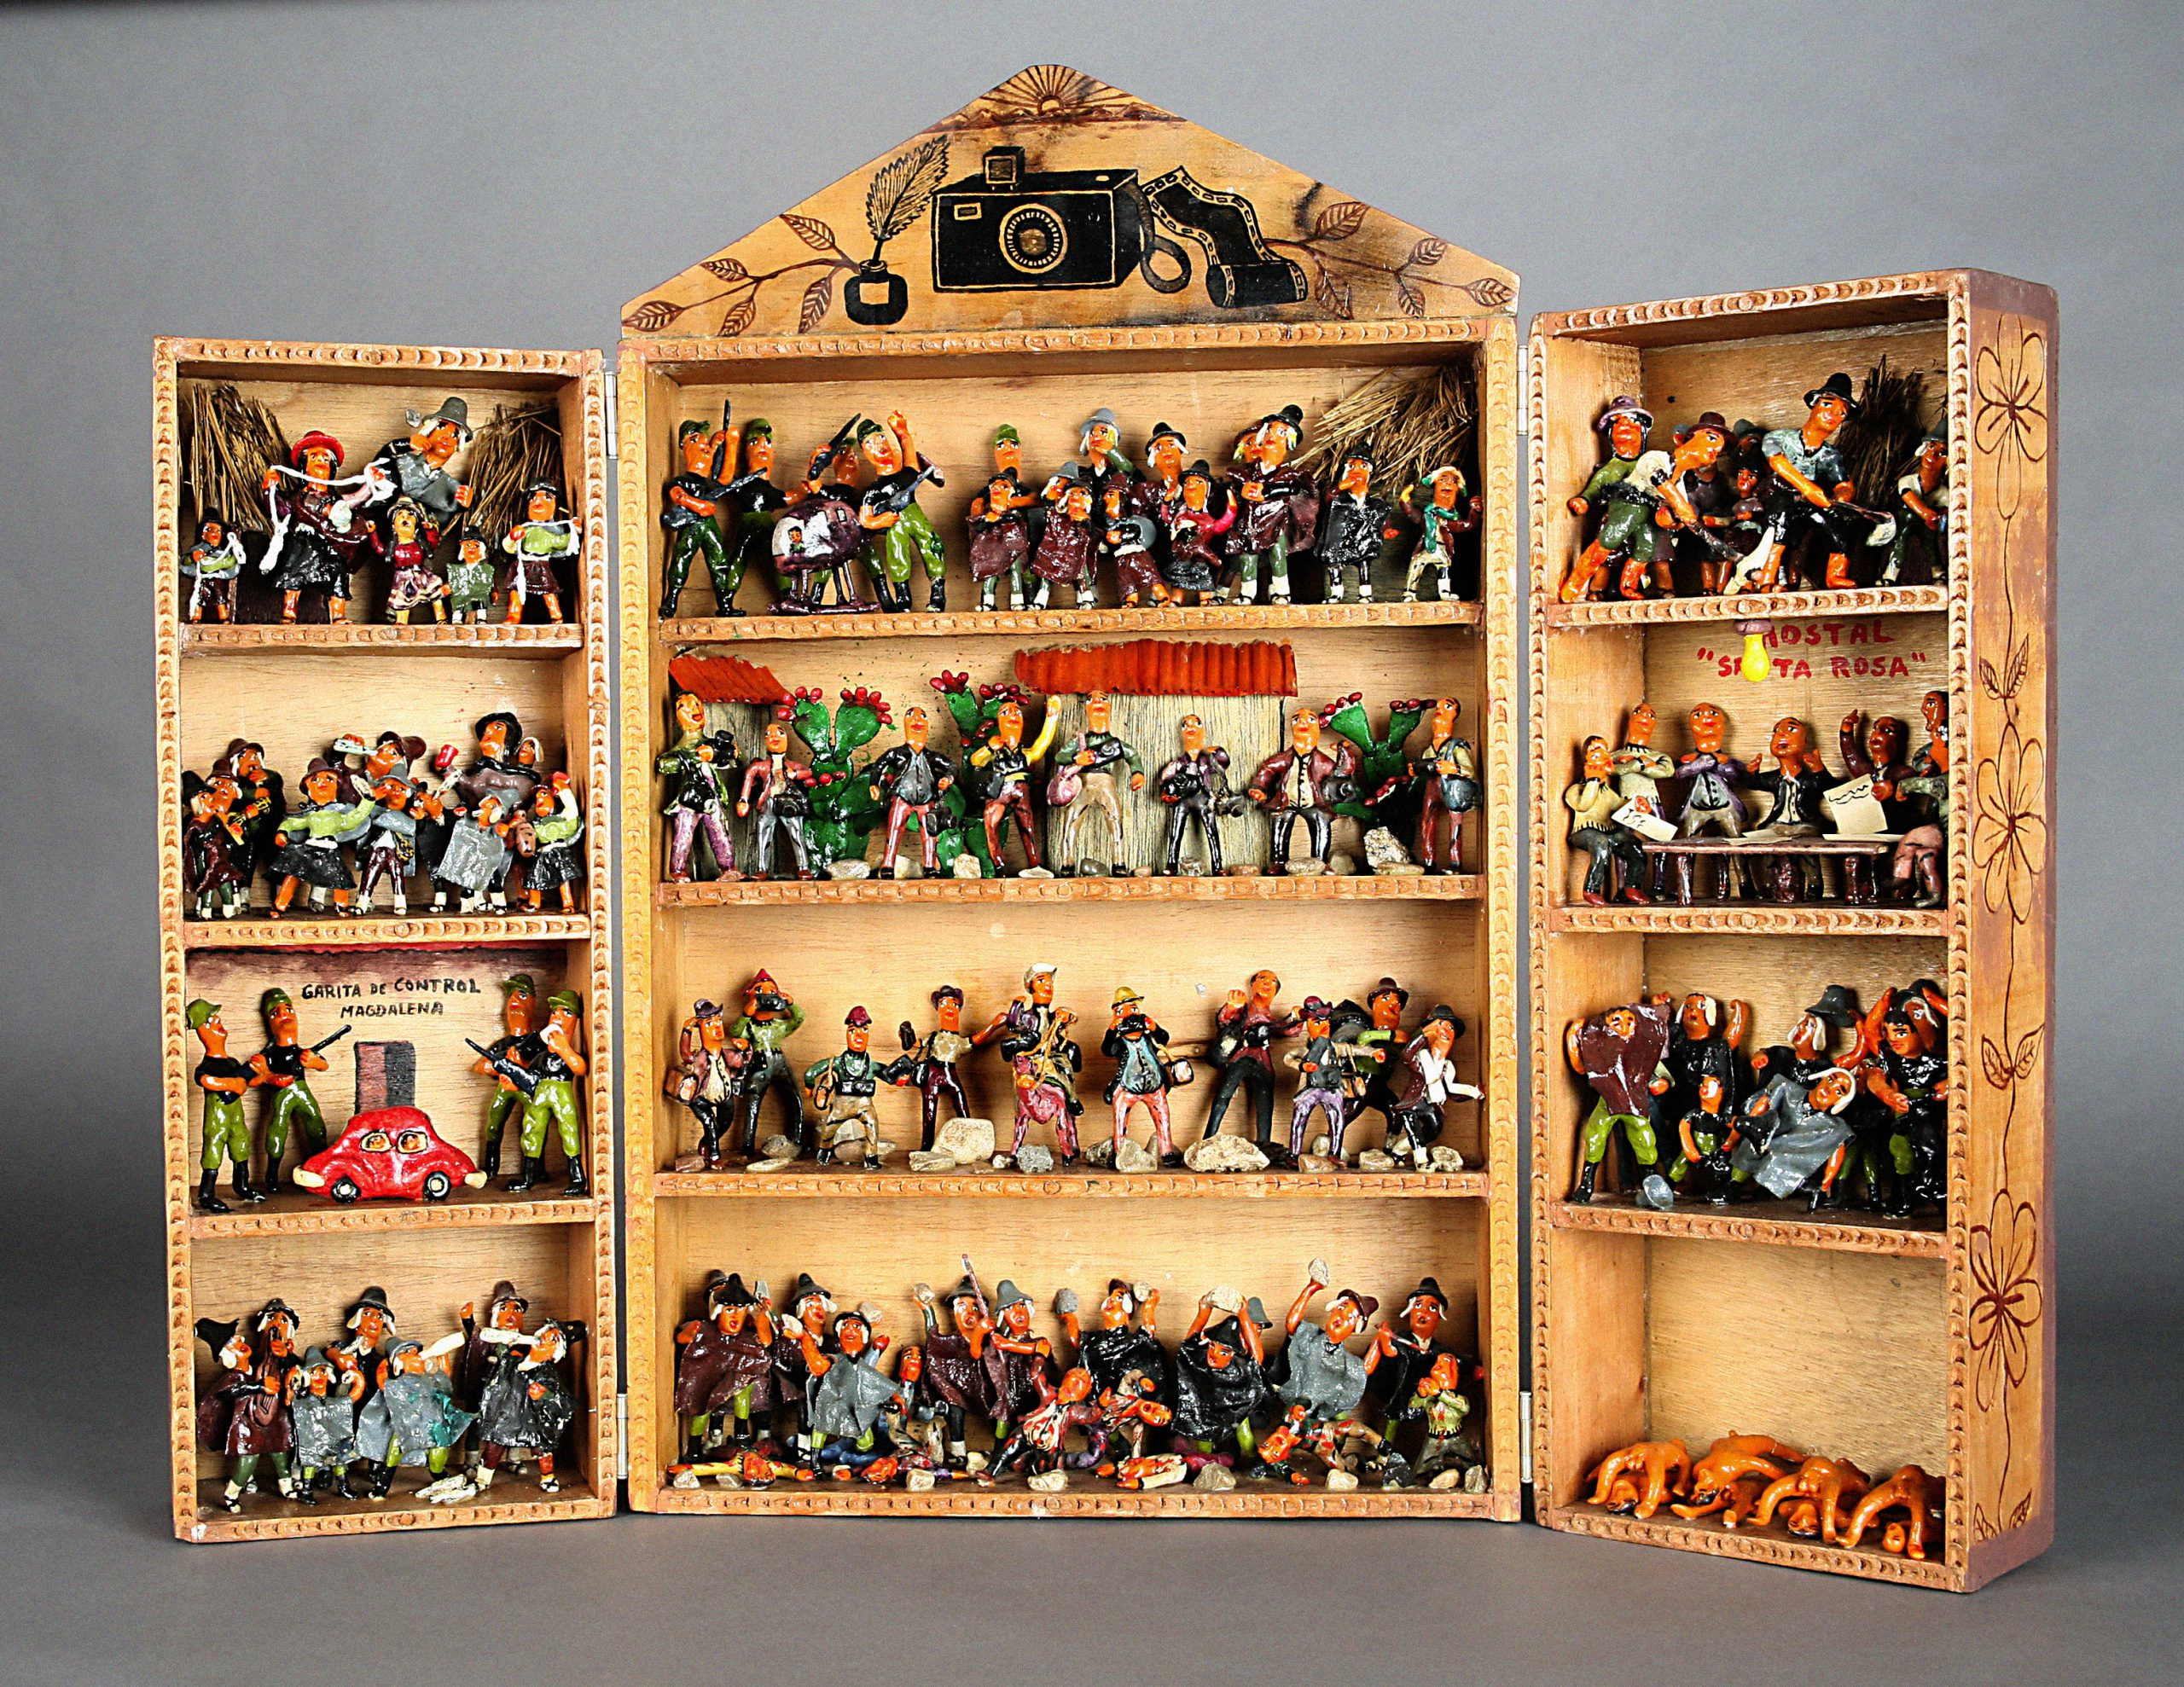 An image of a retablo. The retablo has a likeness to an open cabinet with shelves, each containing figurines portraying different scenes.